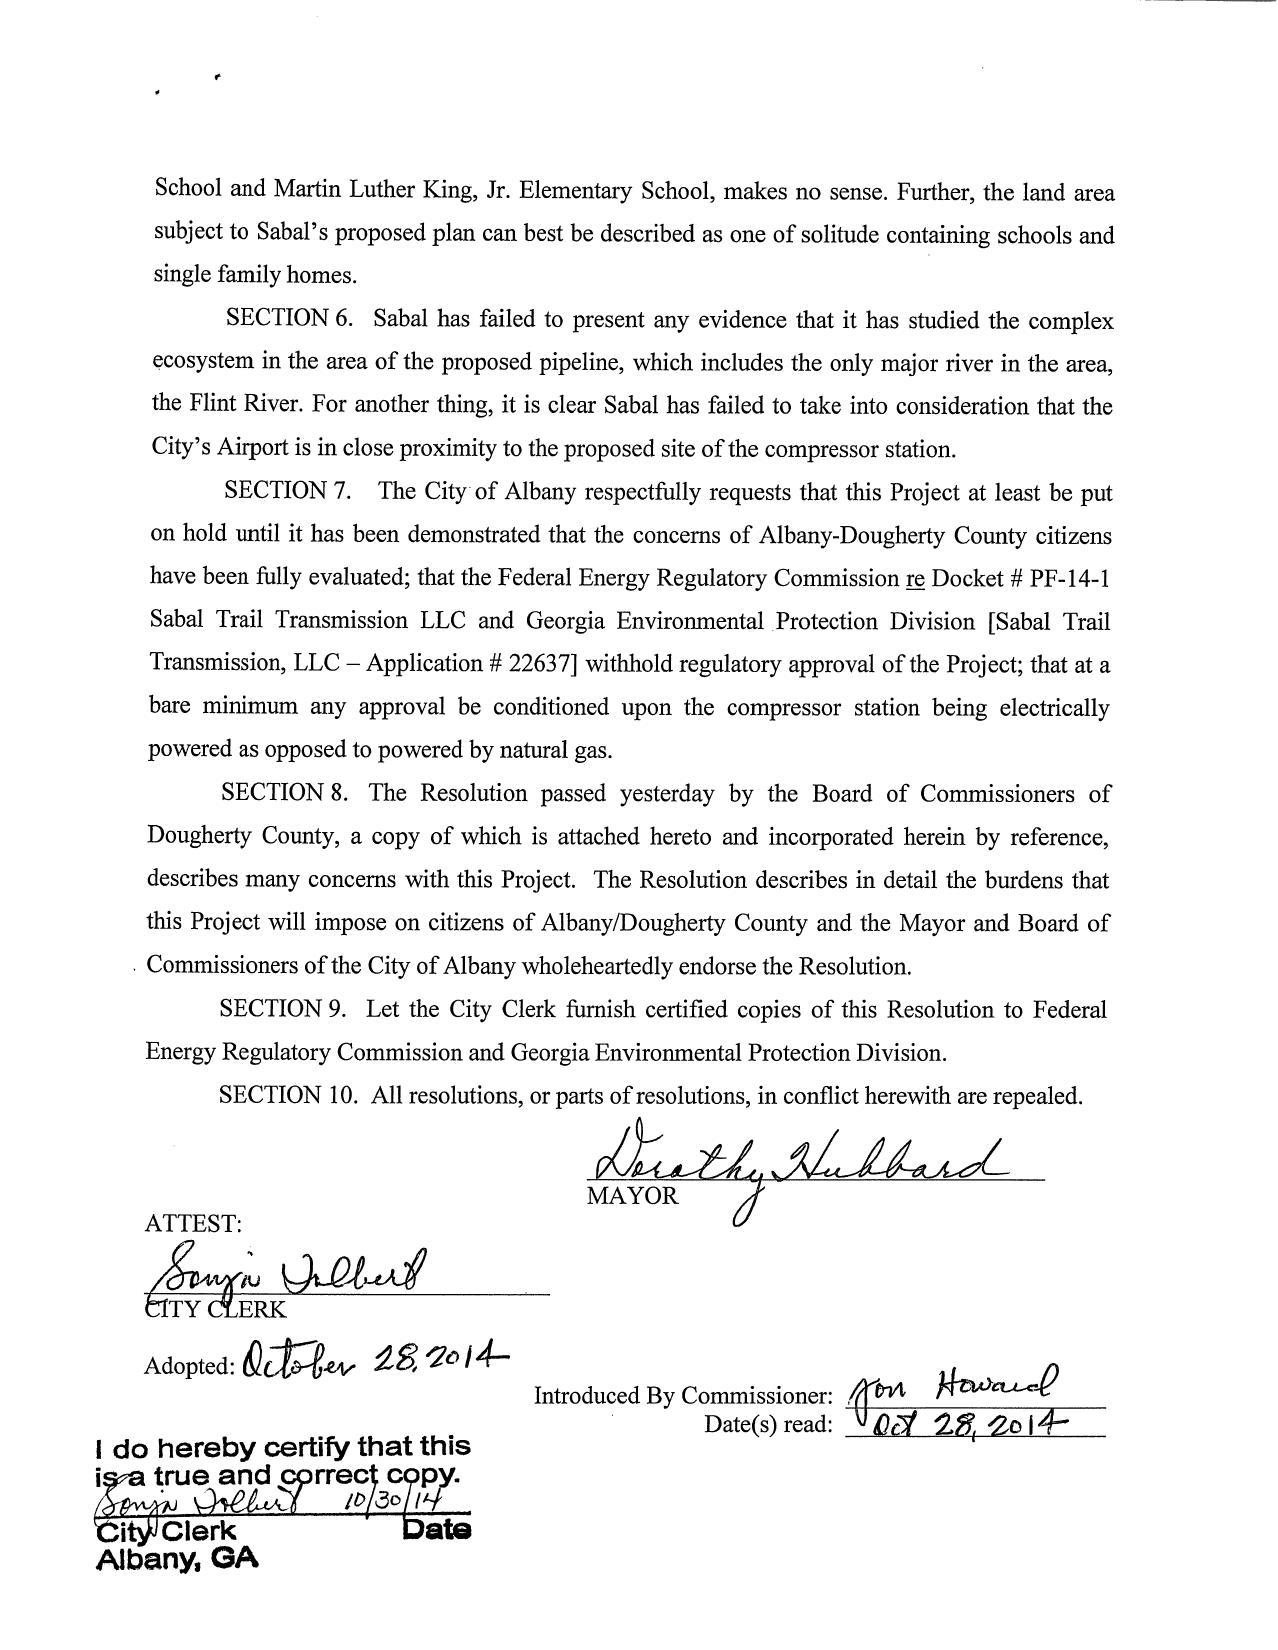 1278x1650 Albany wholeheartedly endorses Dougherty Countys Resolution, in Albany Resolution Against Sabal Trail Pipeline, by City of Albany, for SpectraBusters.org, 28 October 2014